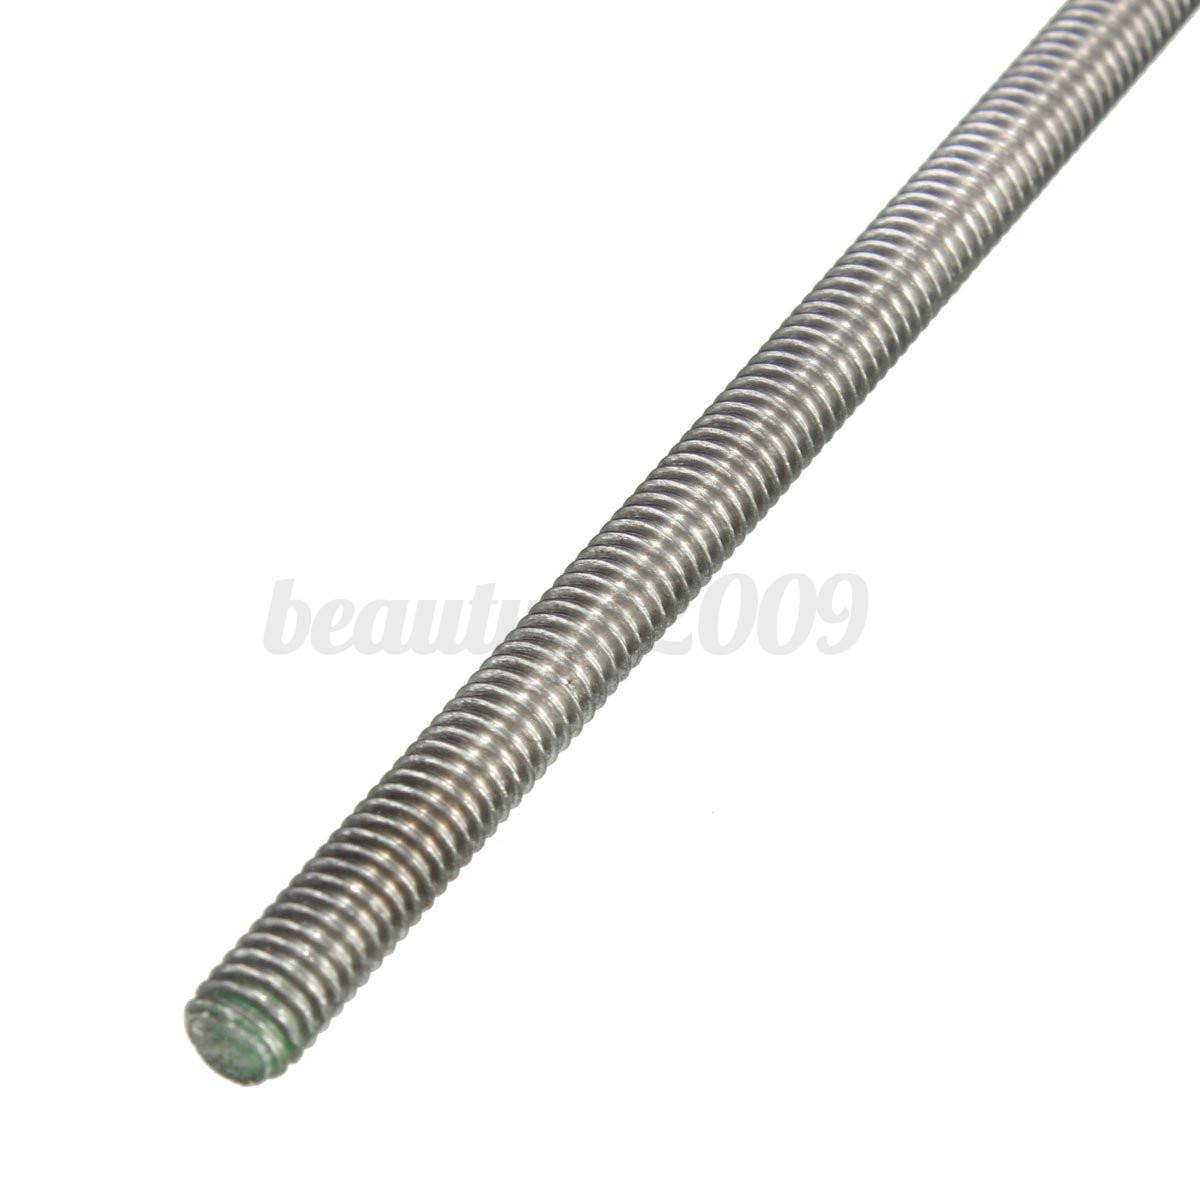 Pc stainless steel threaded rod bar allthread screw